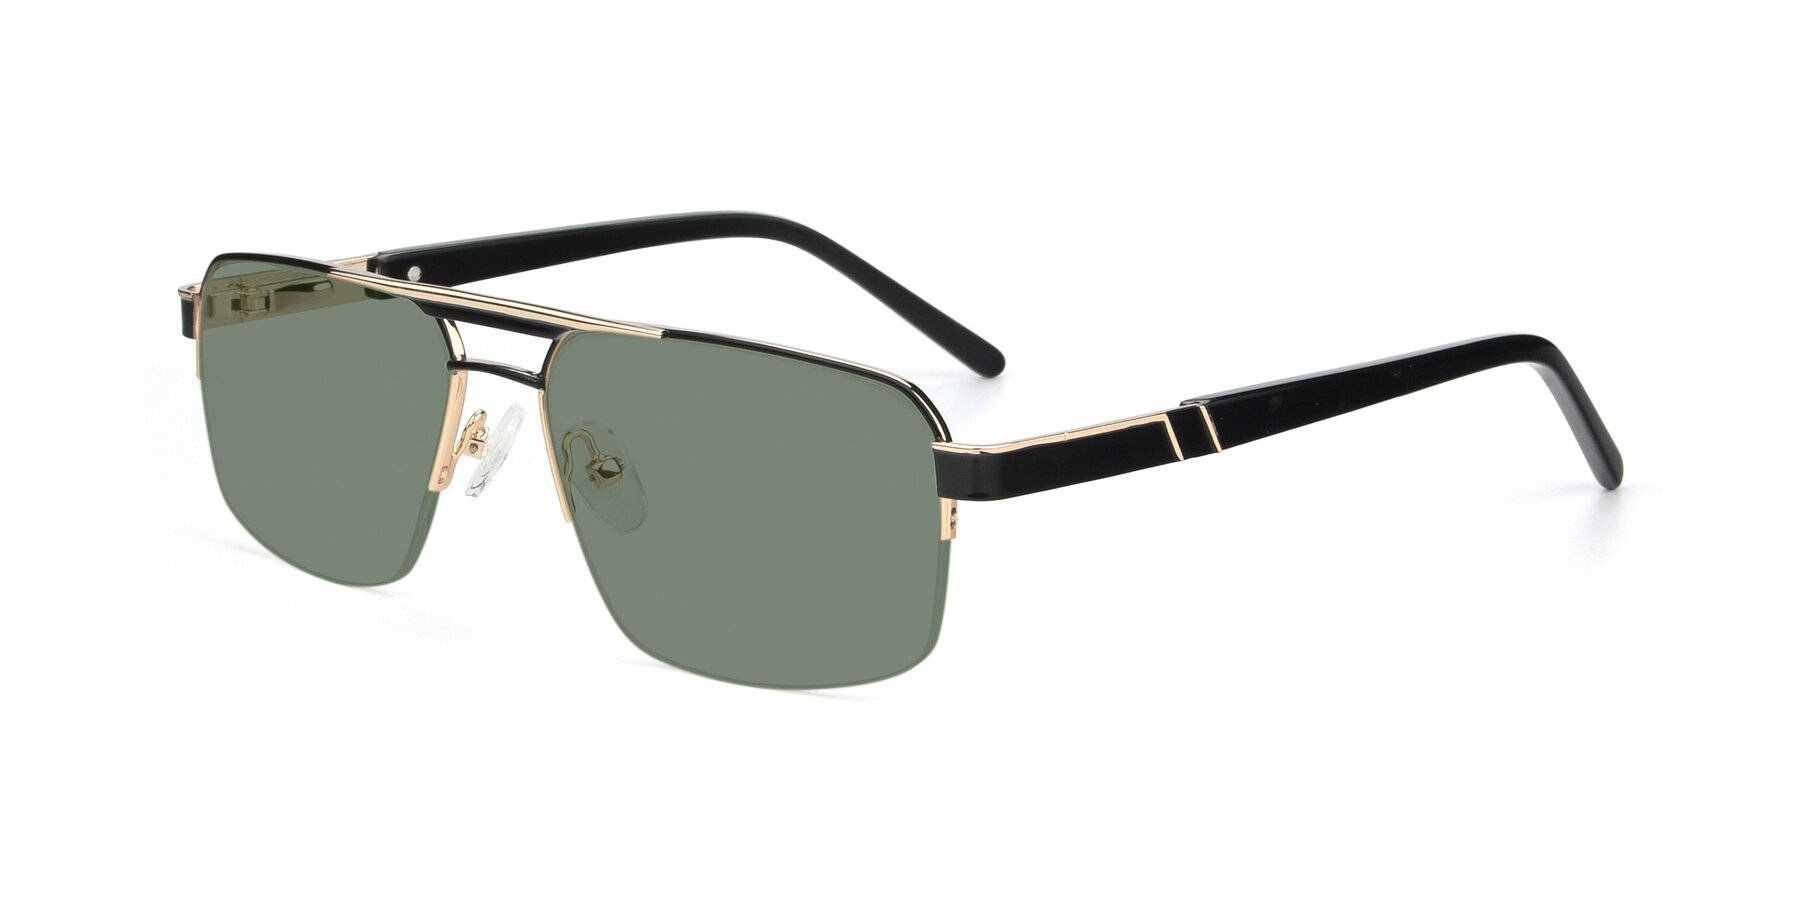 Angle of 19004 in Black-Gold with Medium Green Tinted Lenses